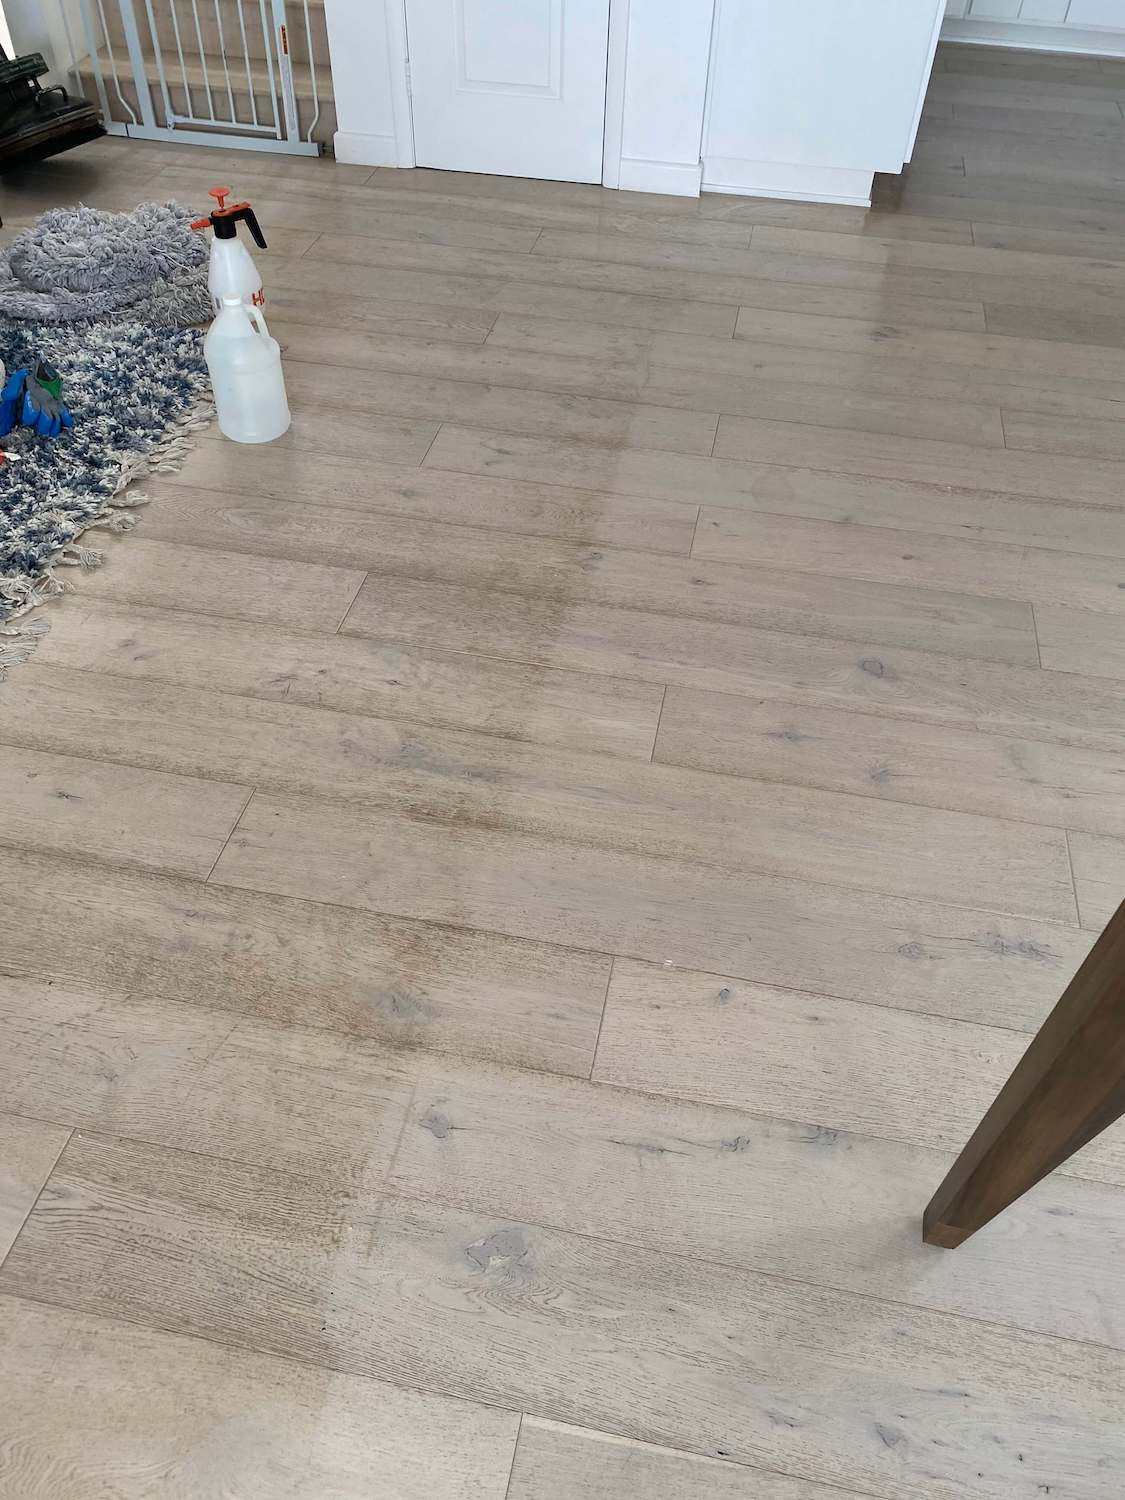 hardwood floor cleaning removes bacteria, allergens, and dirt